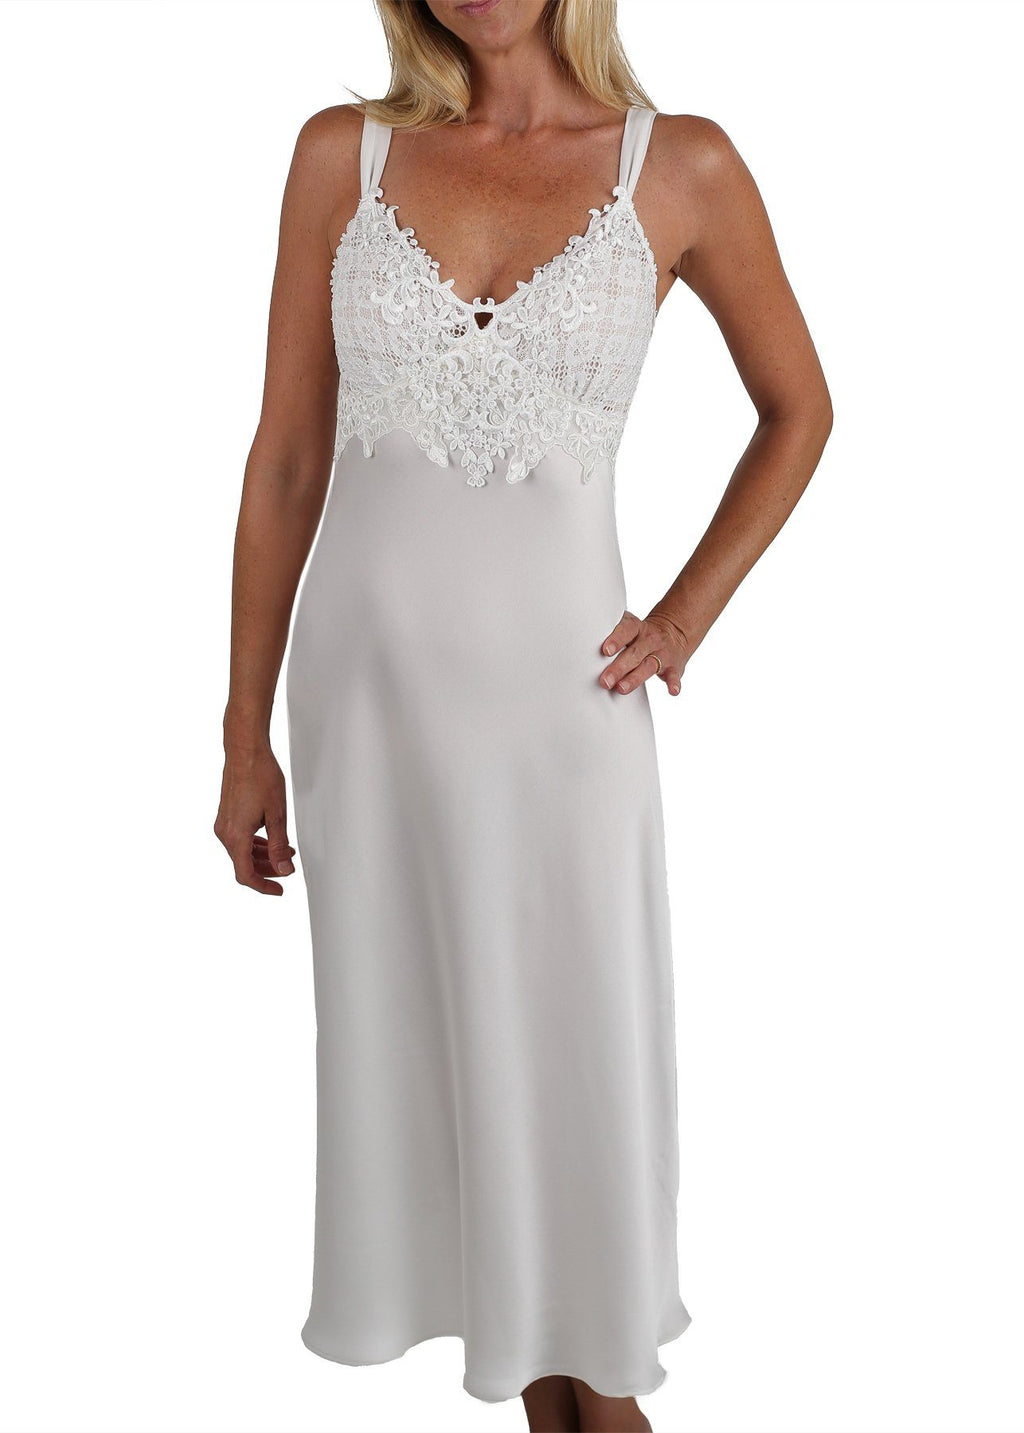 Enchanting Nightgown - Pearl White Mystique Intimates